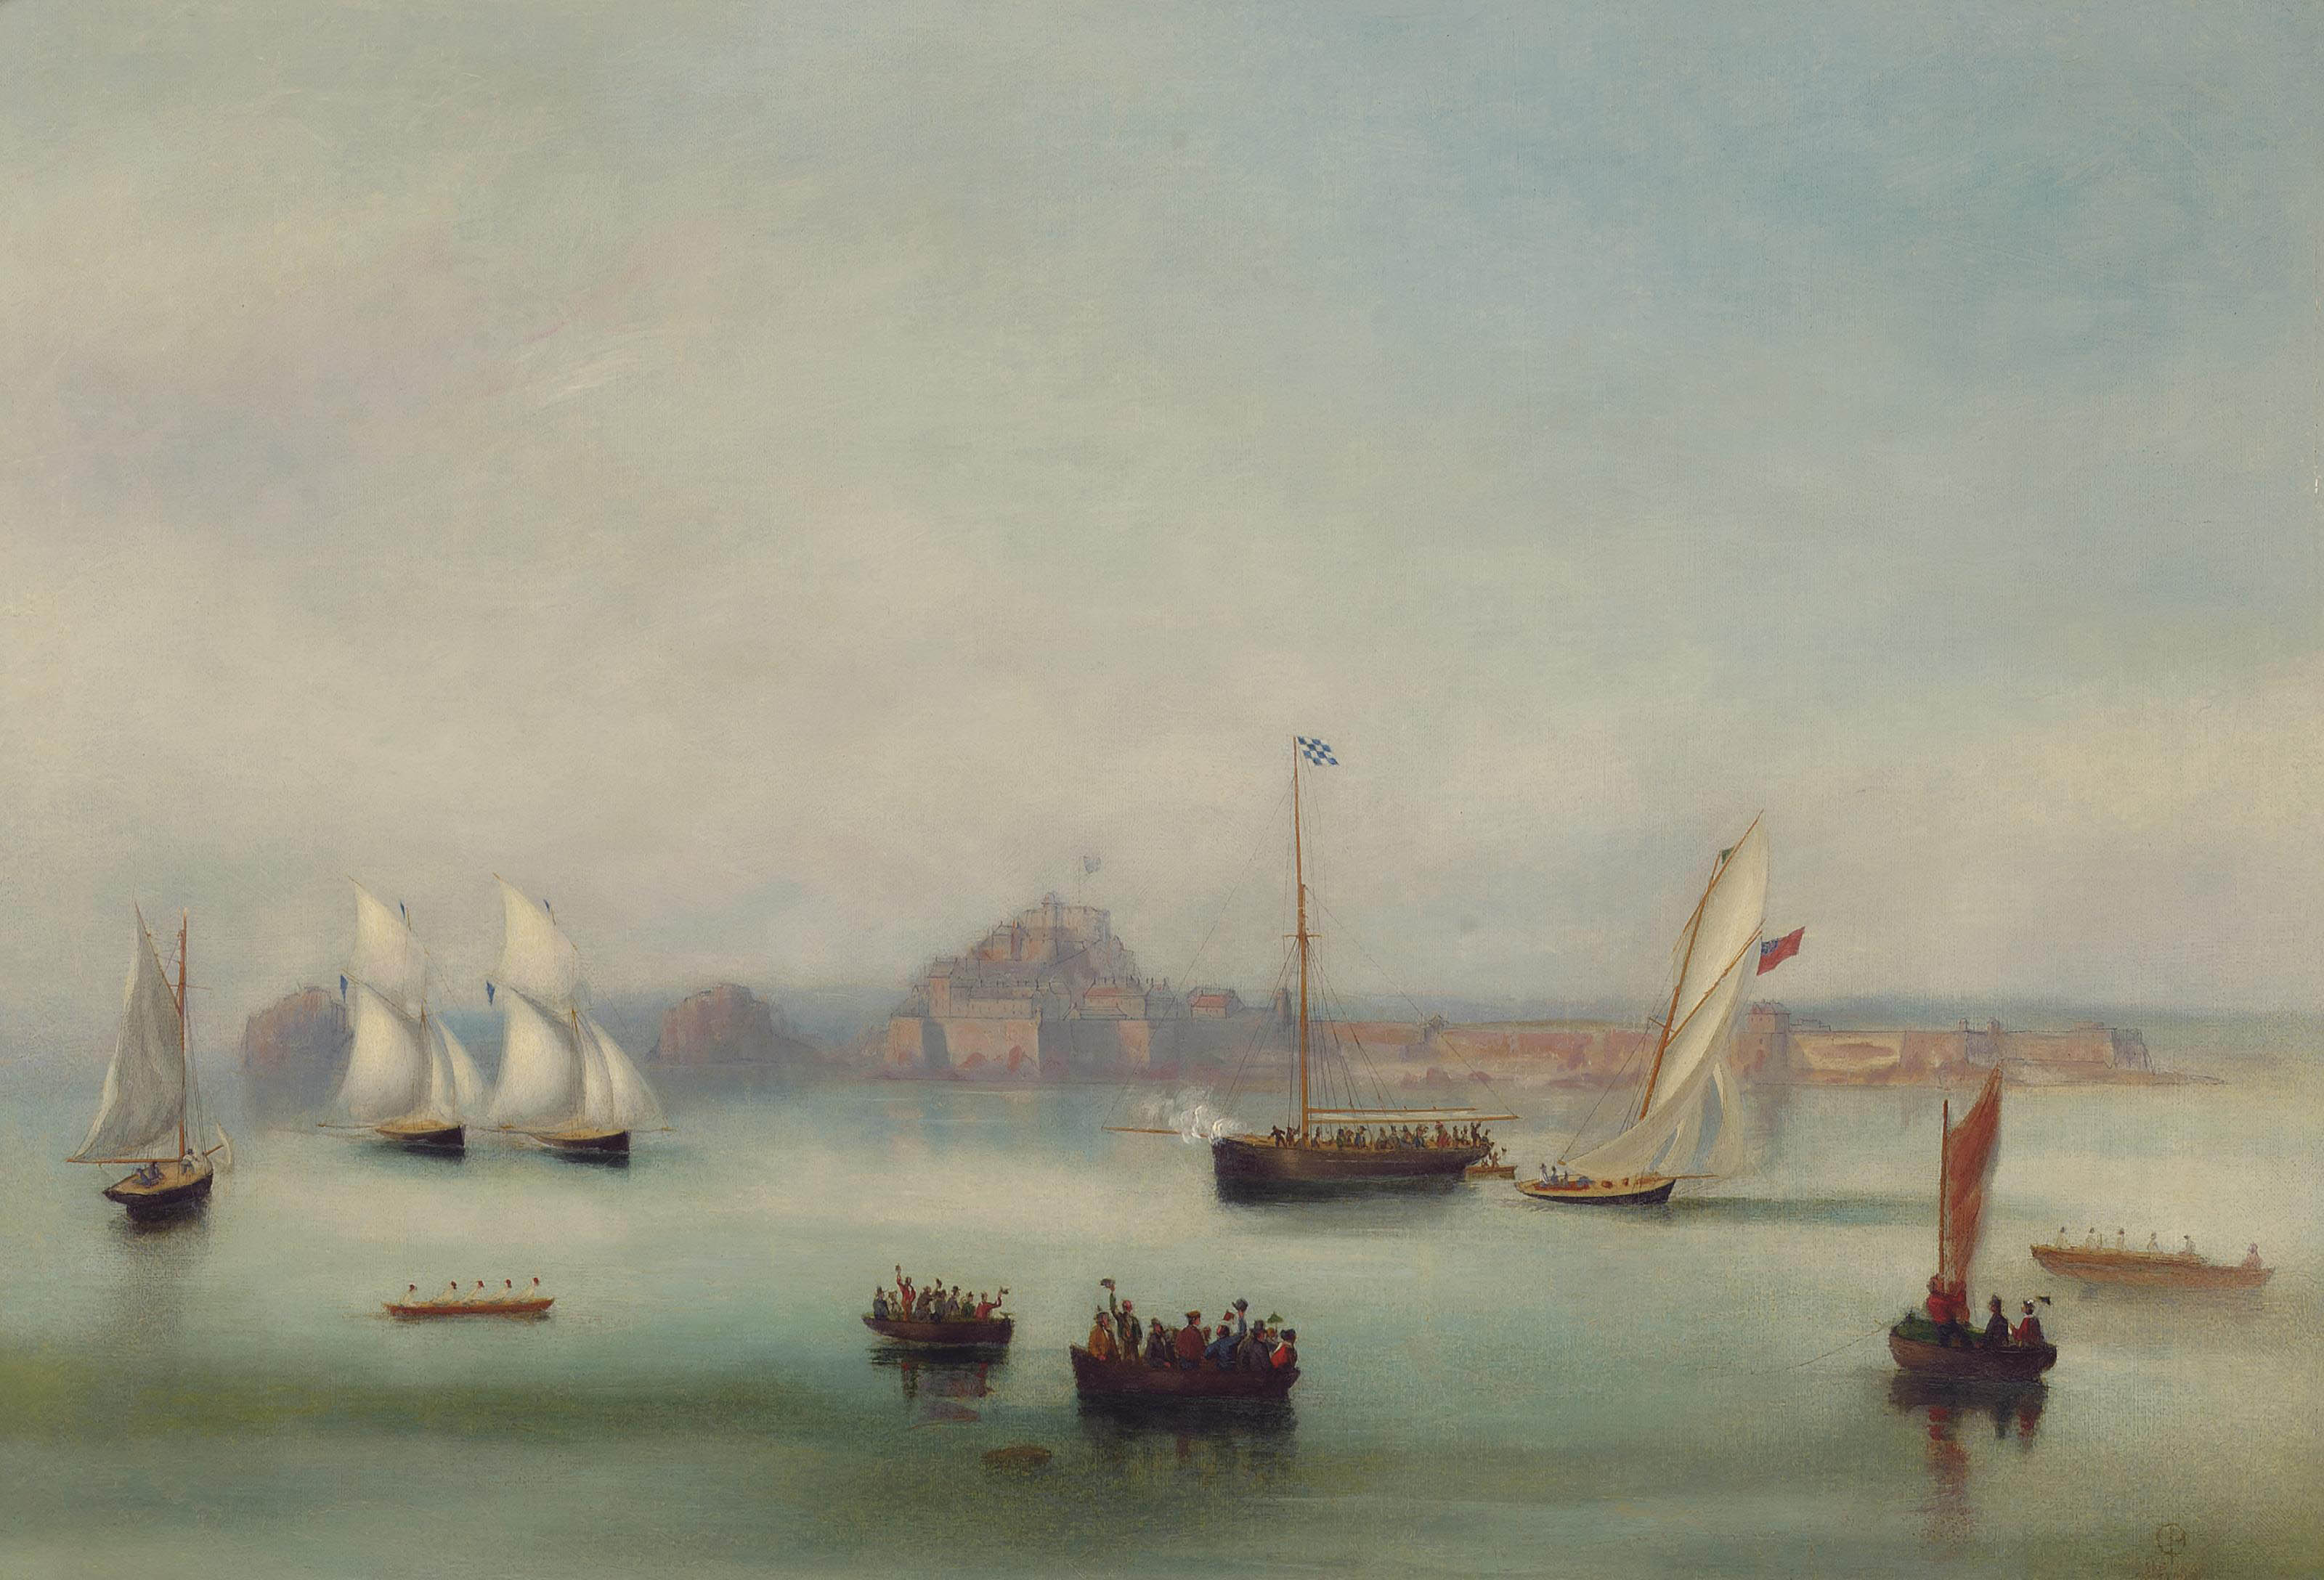 Bonita crossing the line, ahead of Luline and L'Hirondelle after a close-run three-hour race, on 21th August 1862, off St Helier, one of the first races of the newly formed Royal Channel Islands Yacht Club